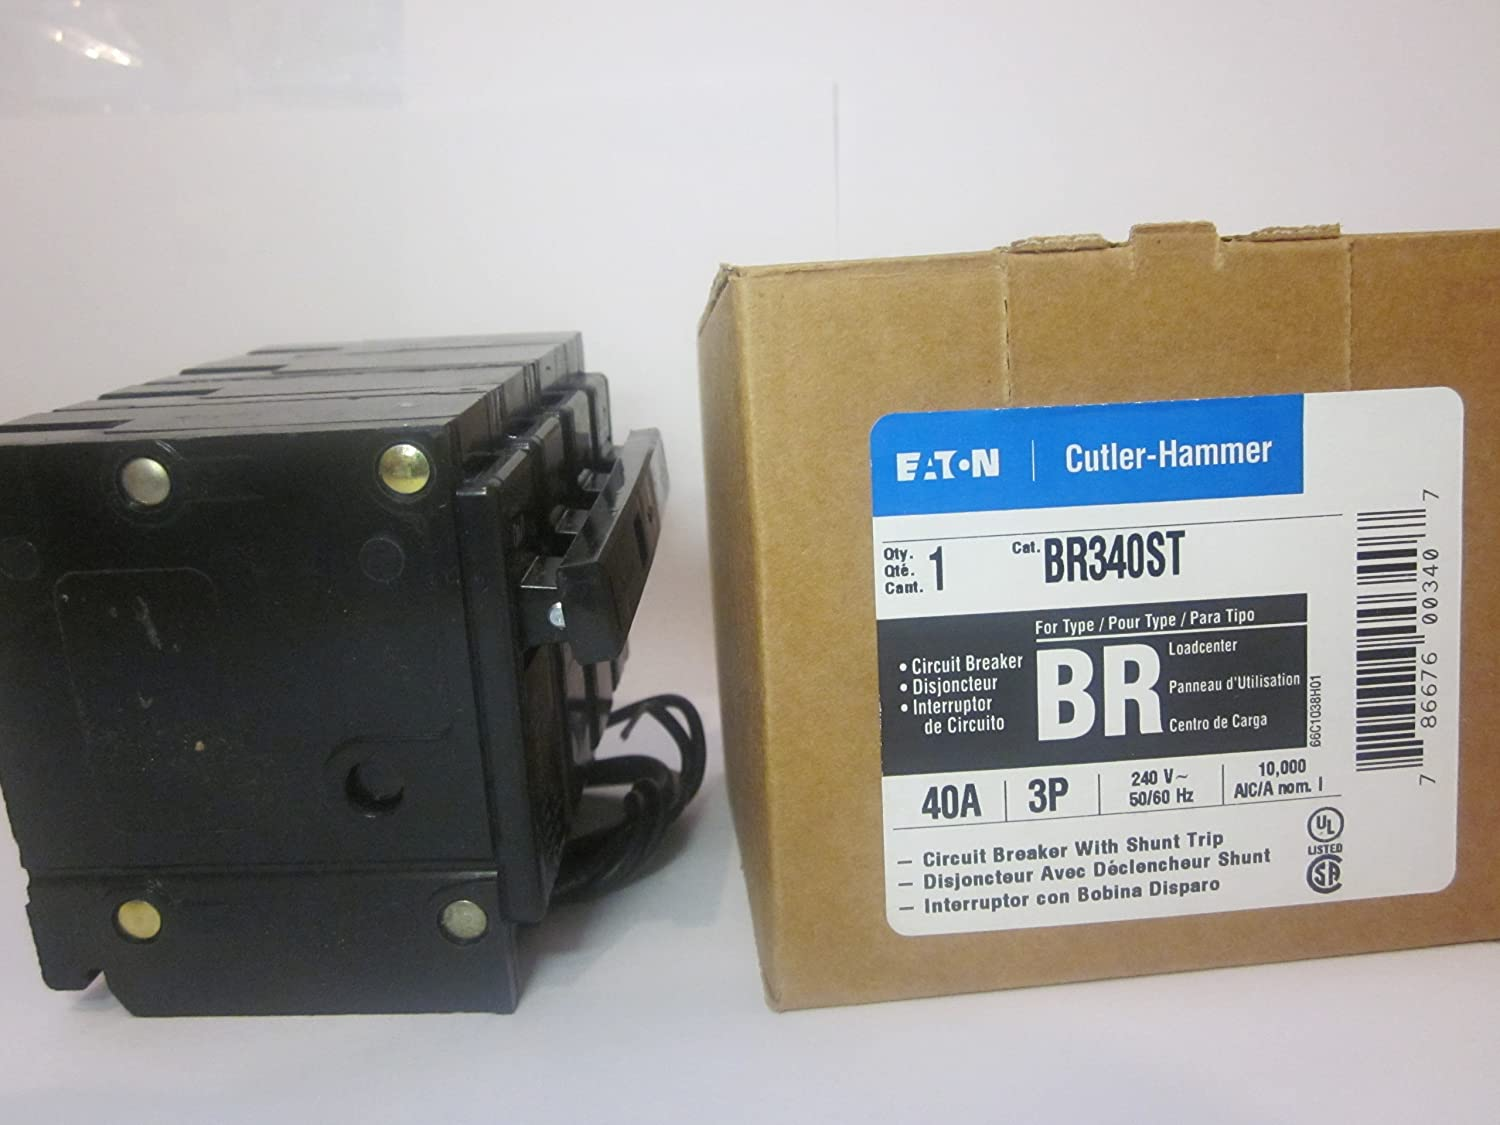 Cutler Hammer Br340st Circuit Breaker 3 Pole 40 Amp With Shunt Trip 100 Main Panel